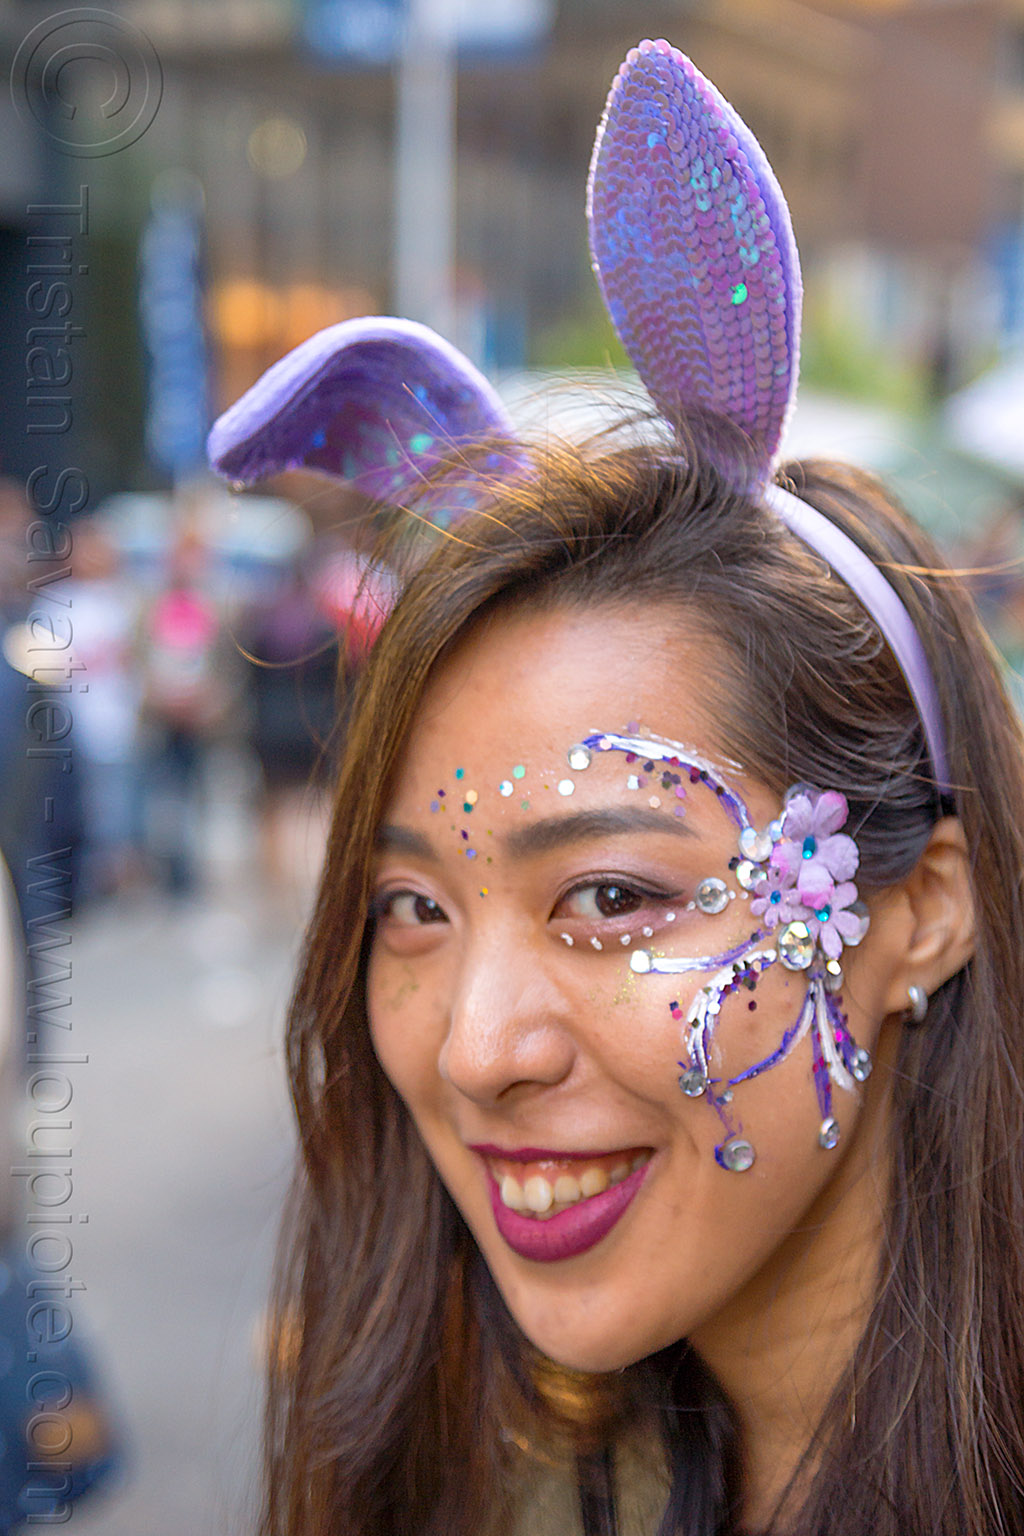 purple bunny ears headband - face paint - how weird street faire (san francisco), bunny ears, face paint, face painting, headband, purple, woman